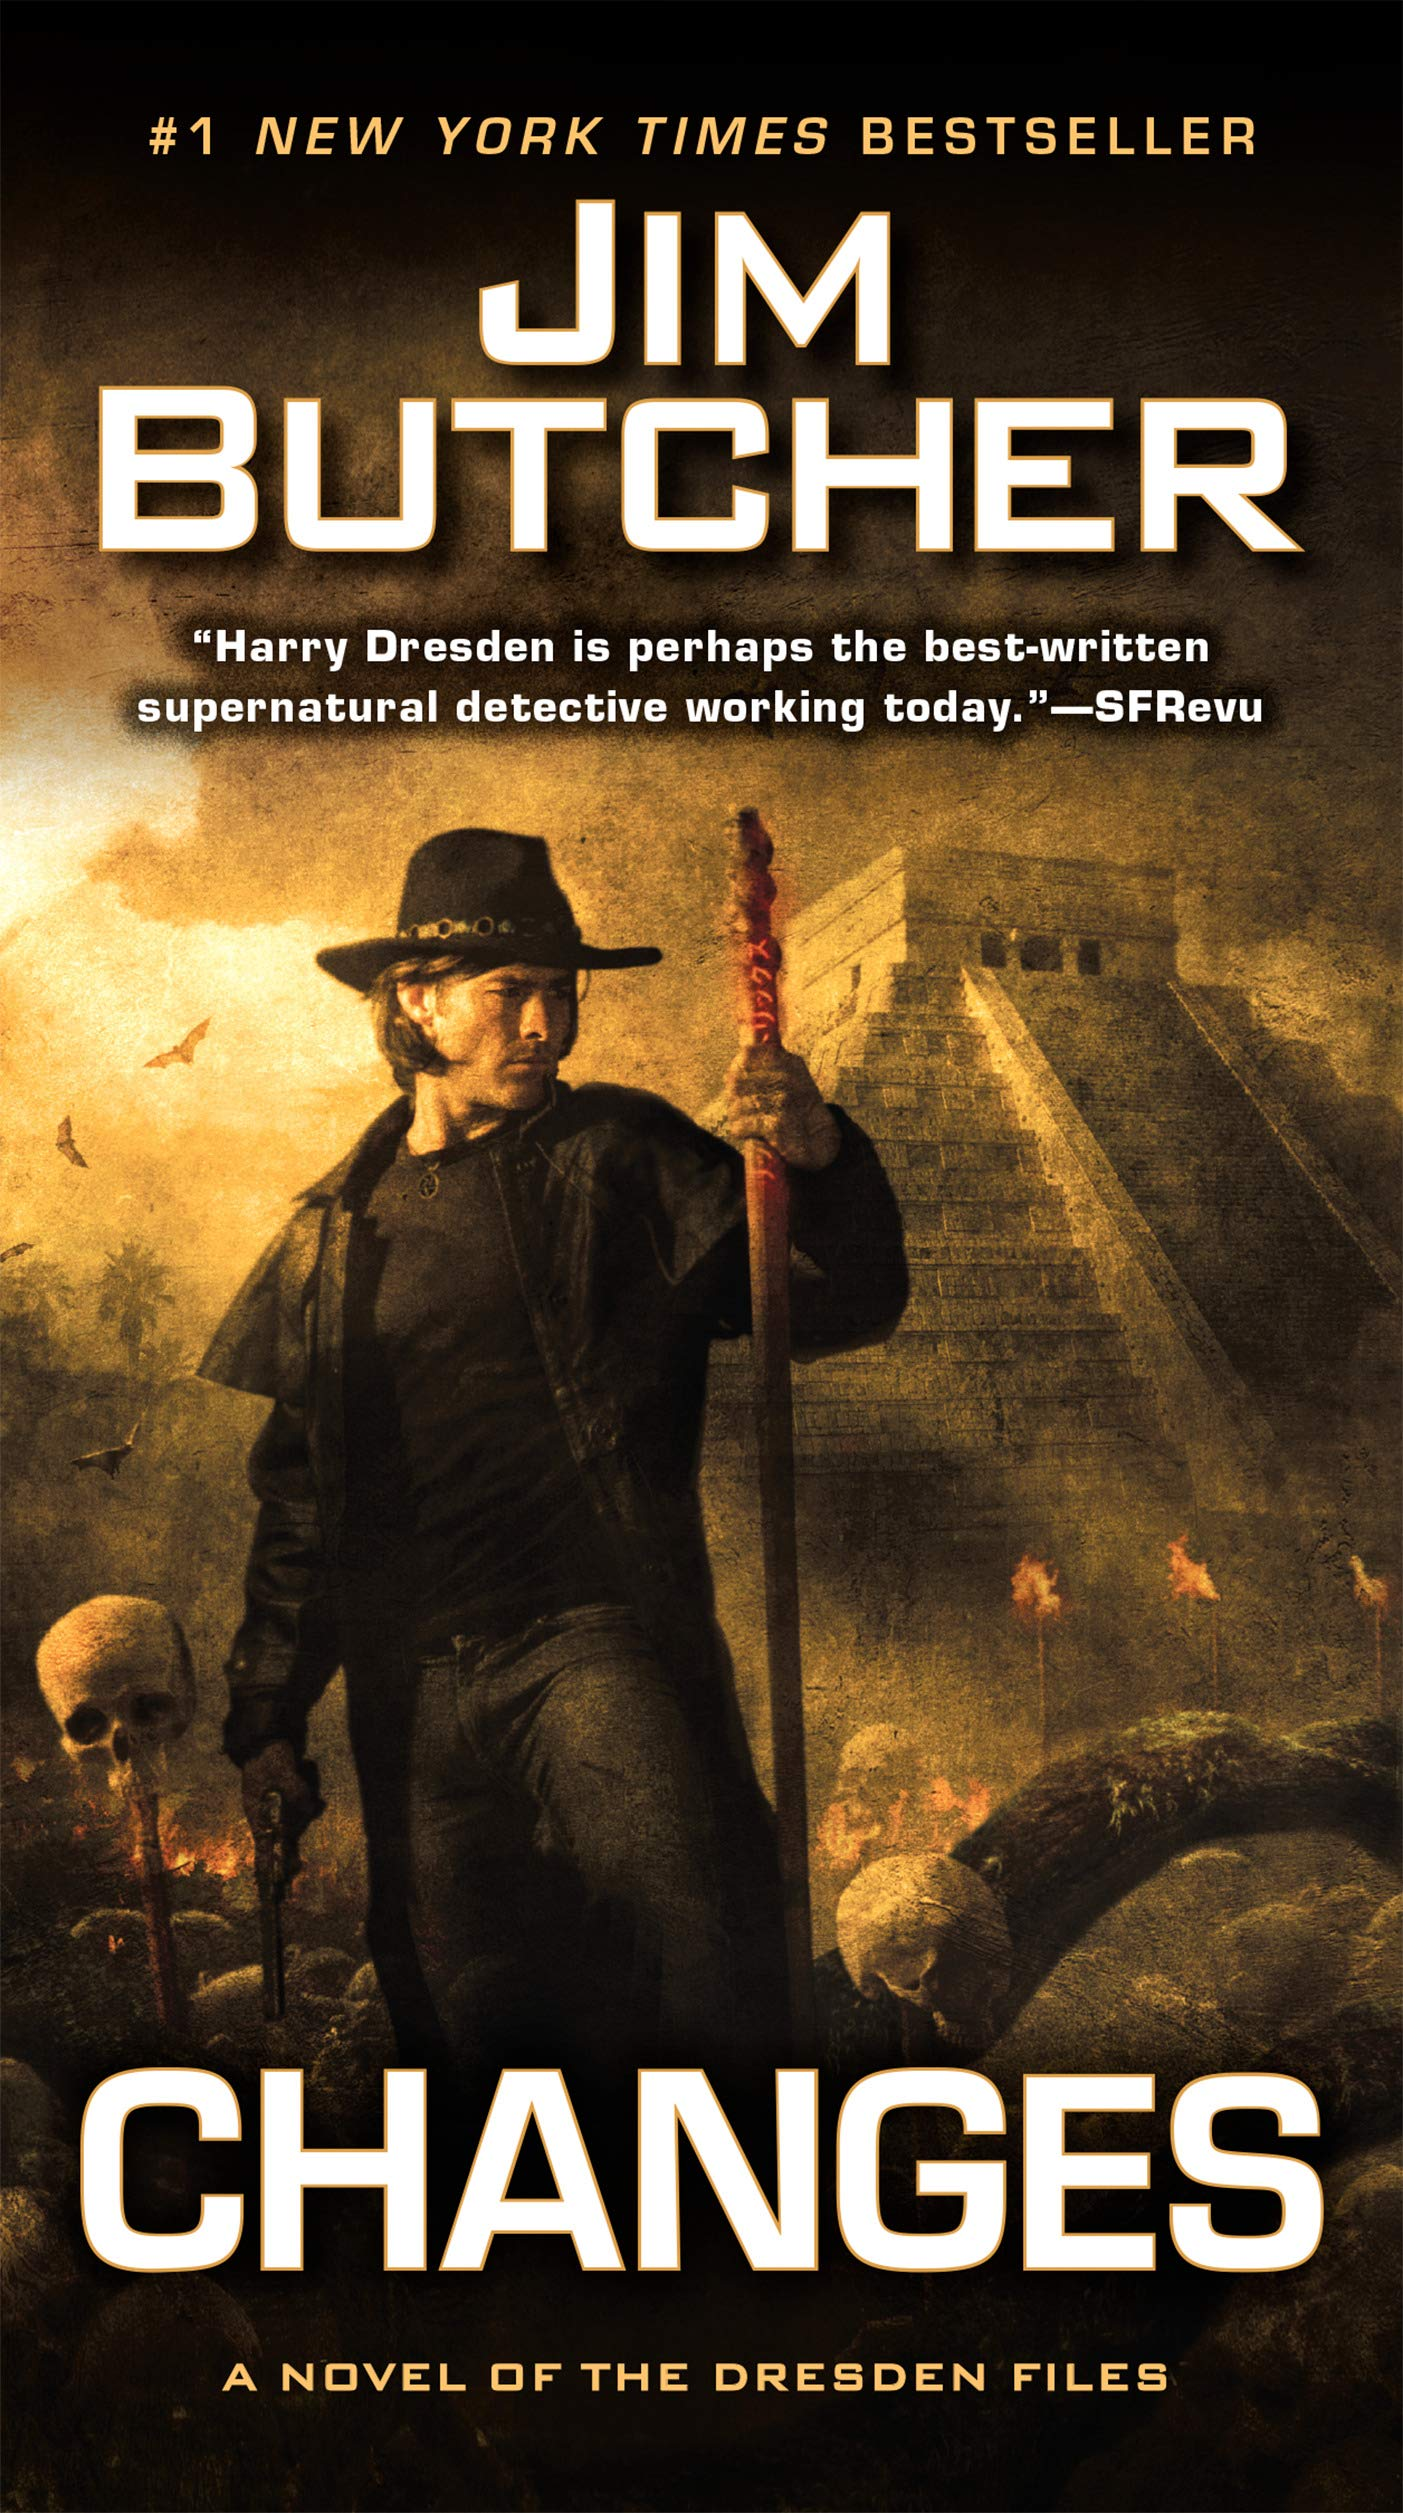 order of the dresden files books